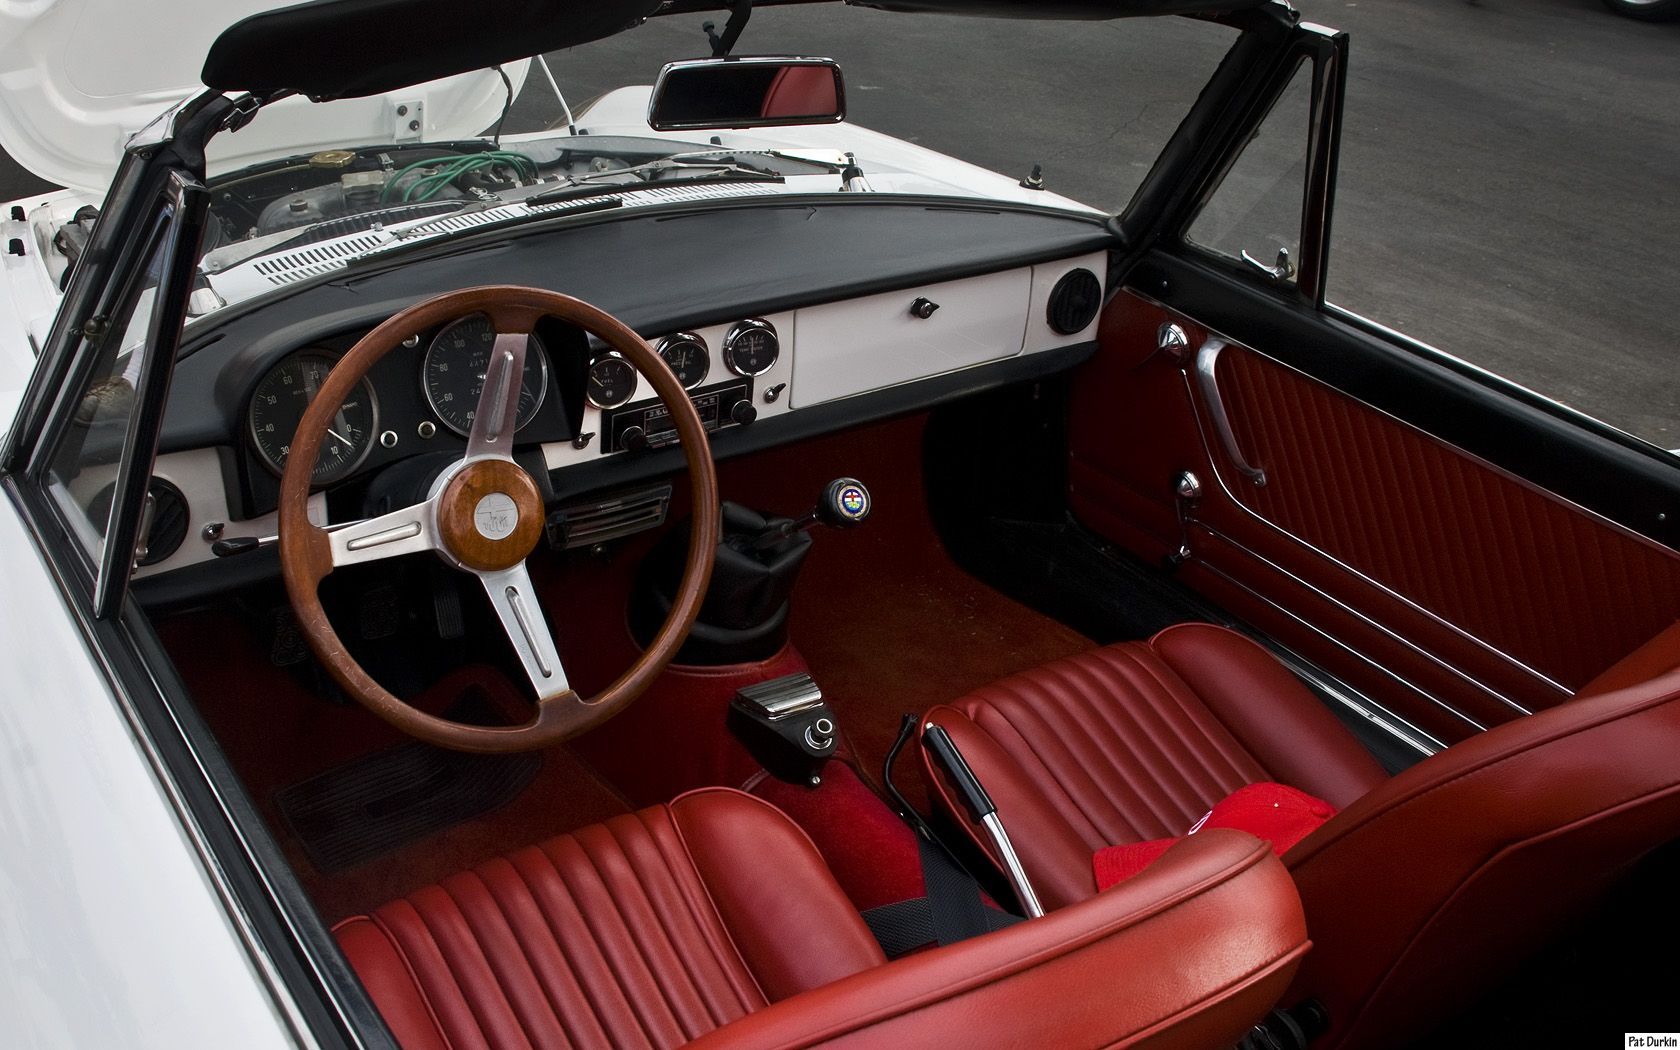 Alfa Romeo Duetto With Glorious Black And Red Interior Alfa Romeo Alfa Romeo Spider Automotive Design